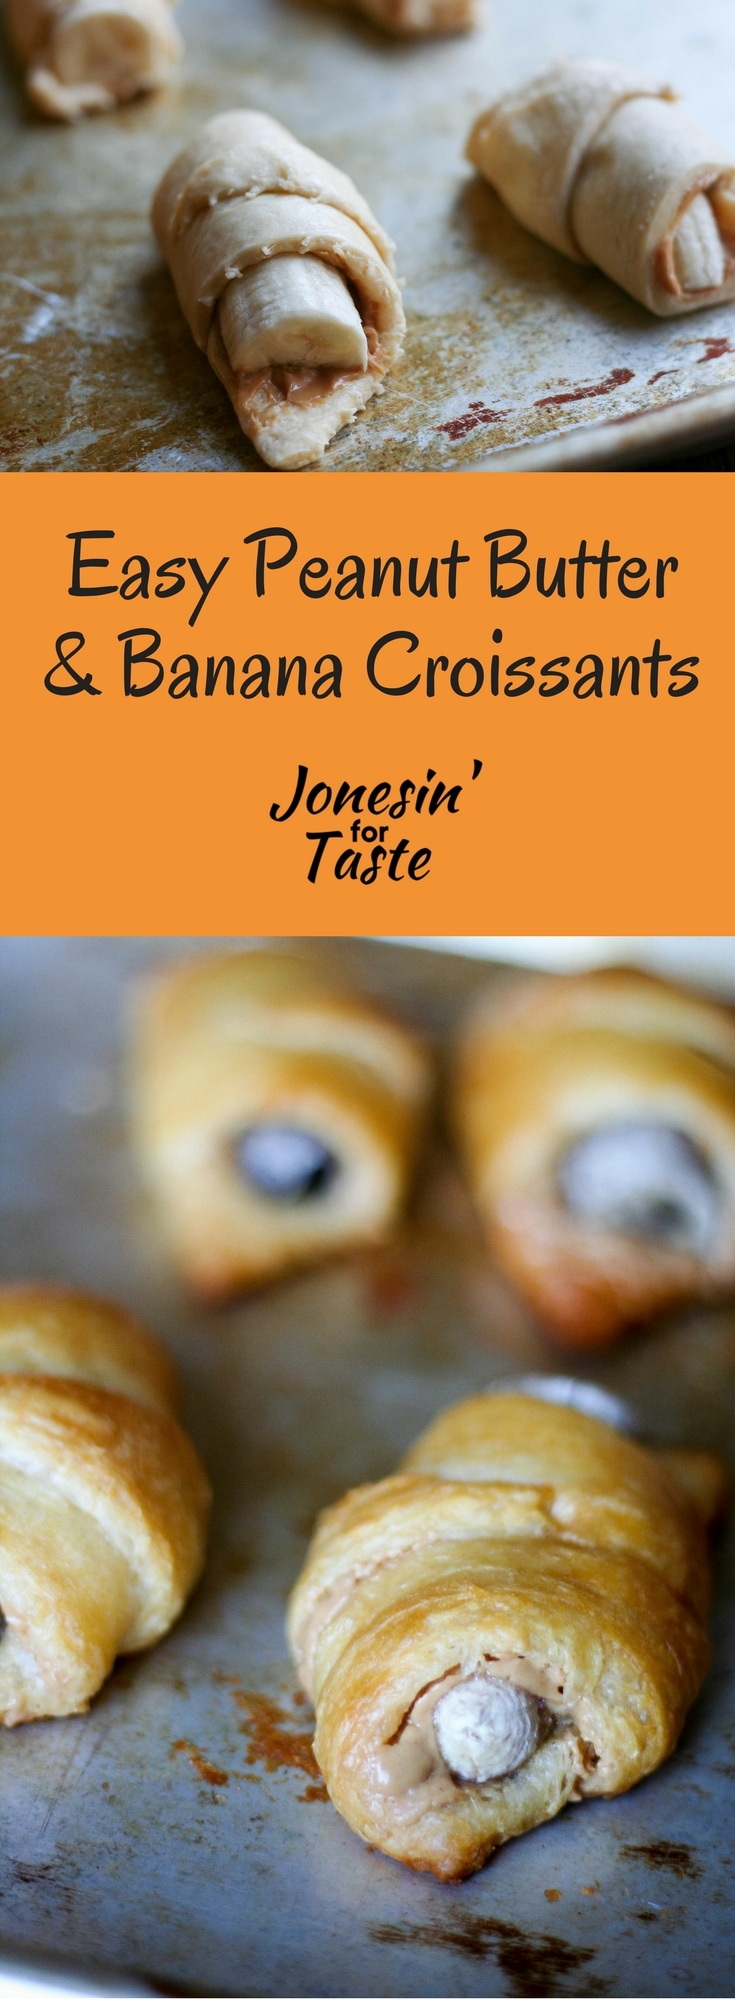 Easy Peanut Butter and Banana Croissants are a super quick breakfast to make on a busy school morning that any banana lover will gobble up. #peanutbutterandbanana